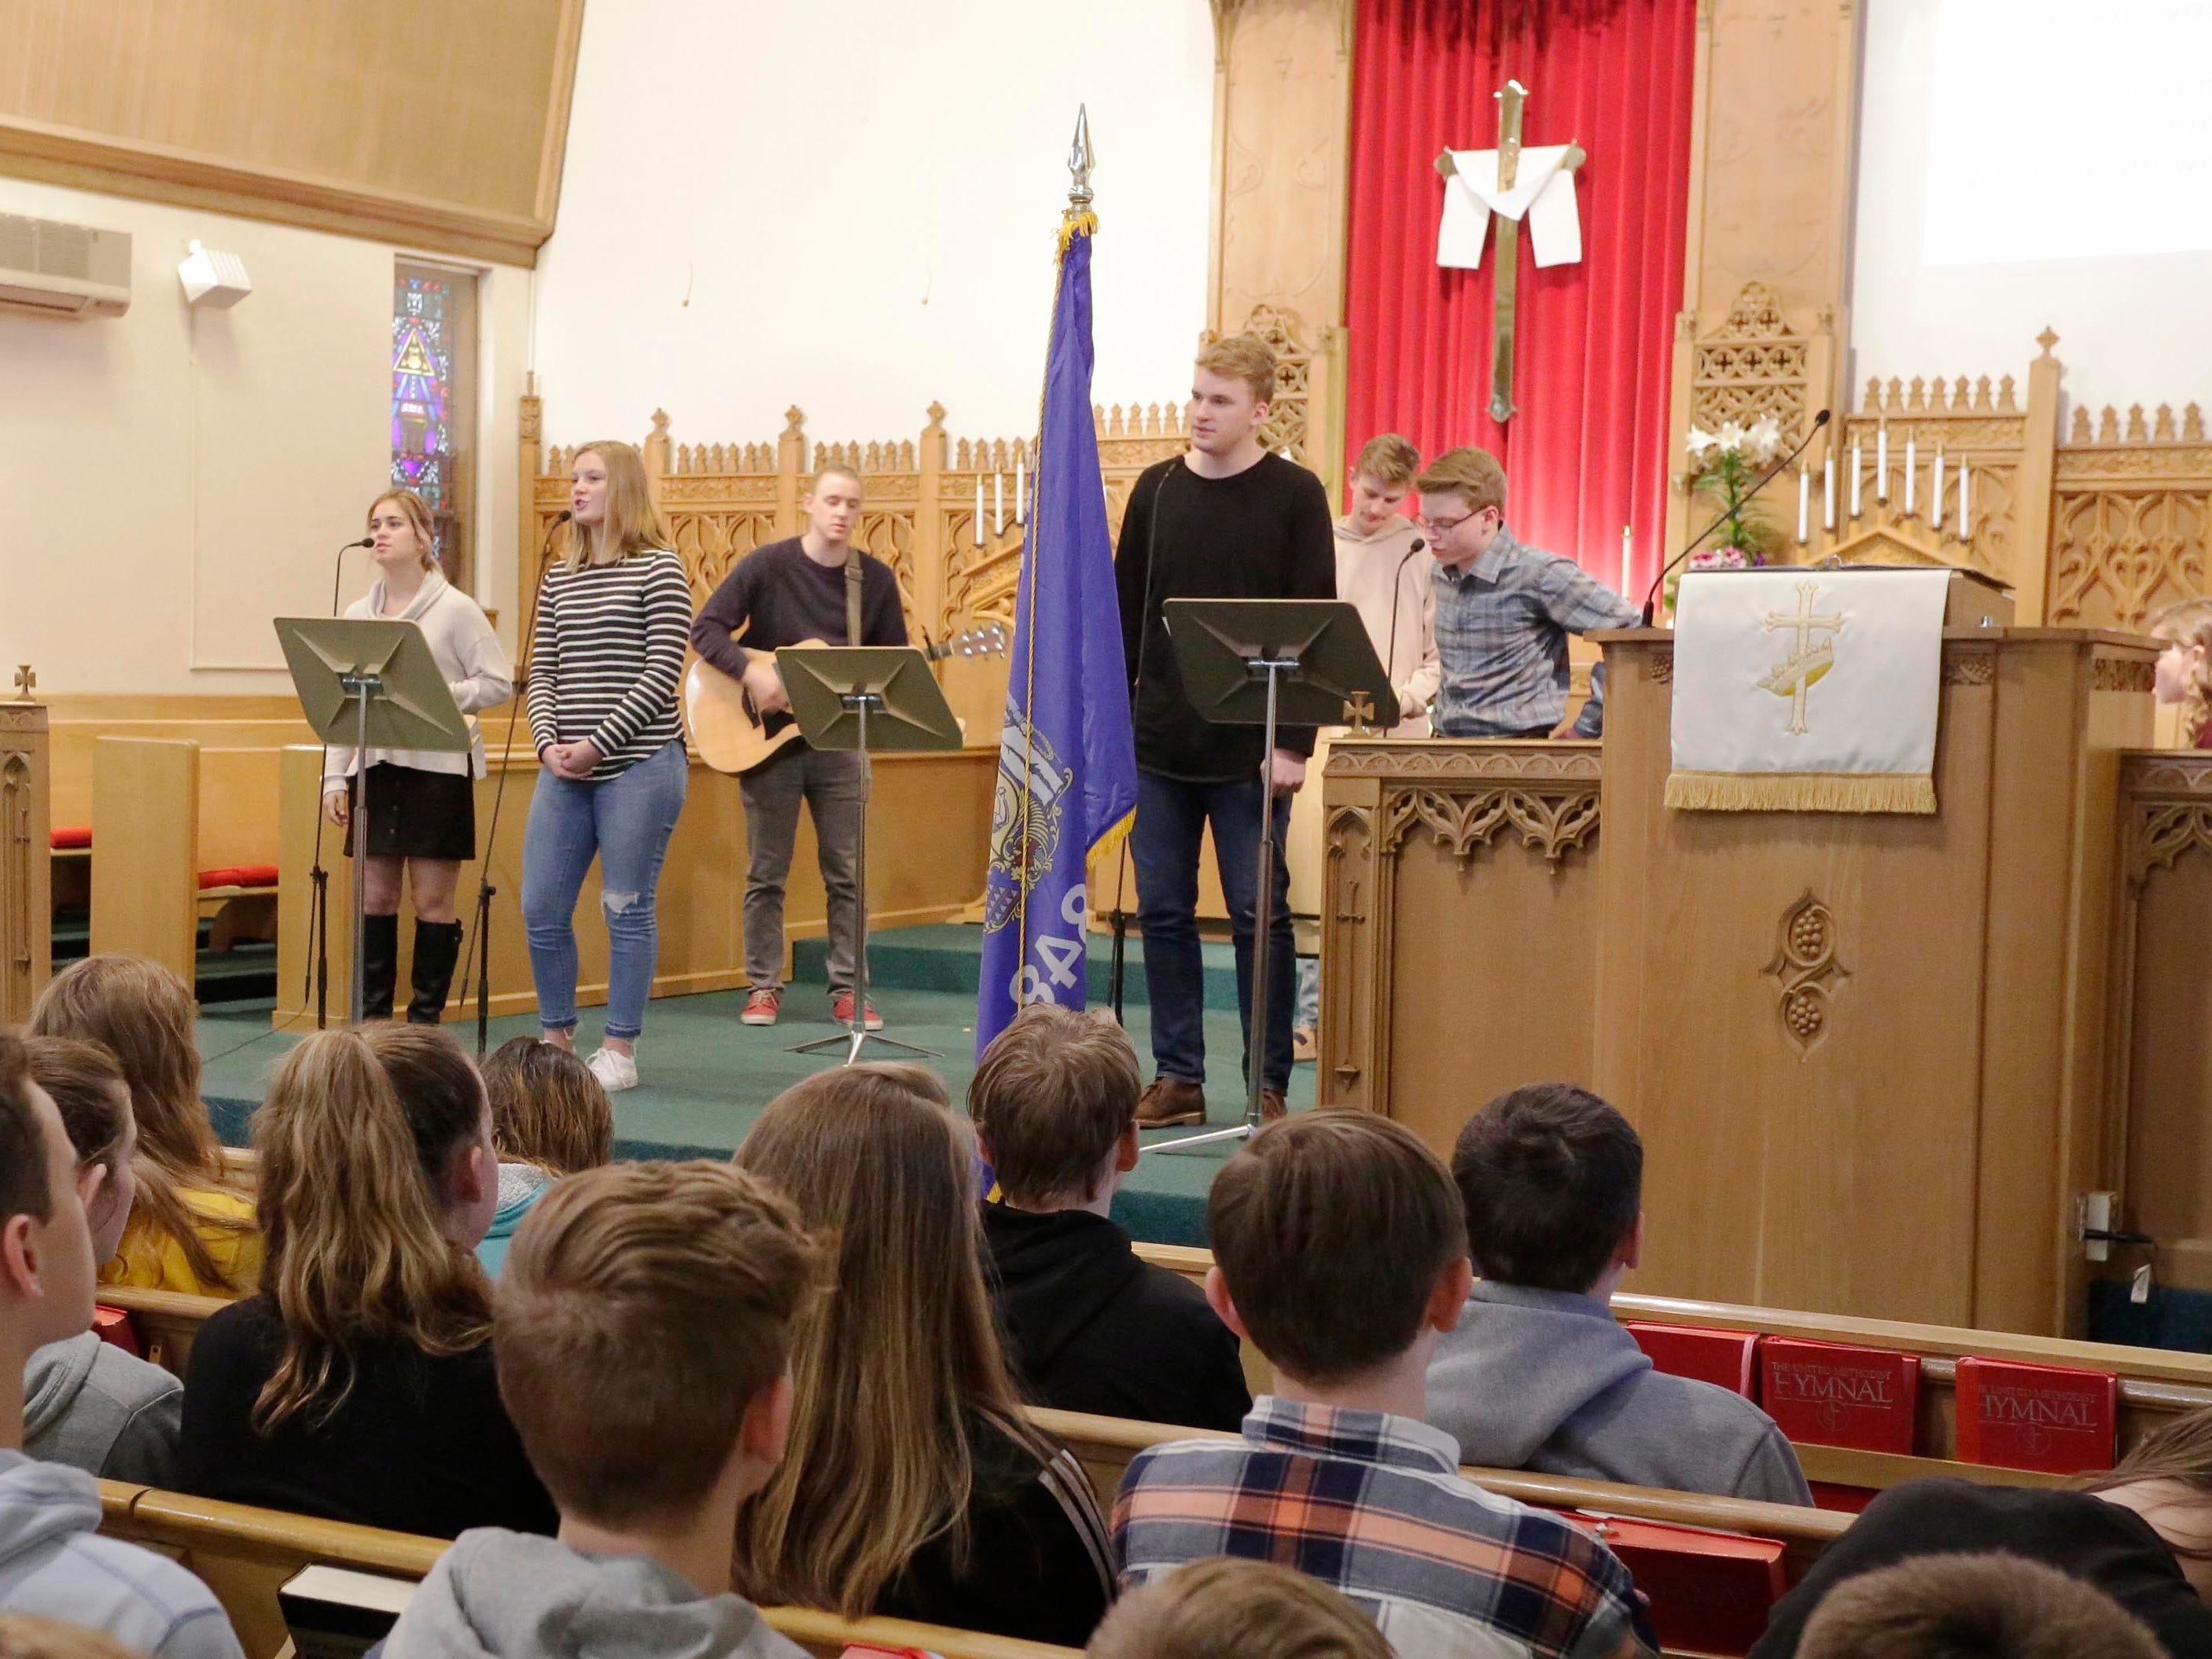 Sheboygan County School Praise Team performs during the National Day of Prayer, Thursday, May 2, 2019, at Fountain Park Church, in Sheboygan, Wis.